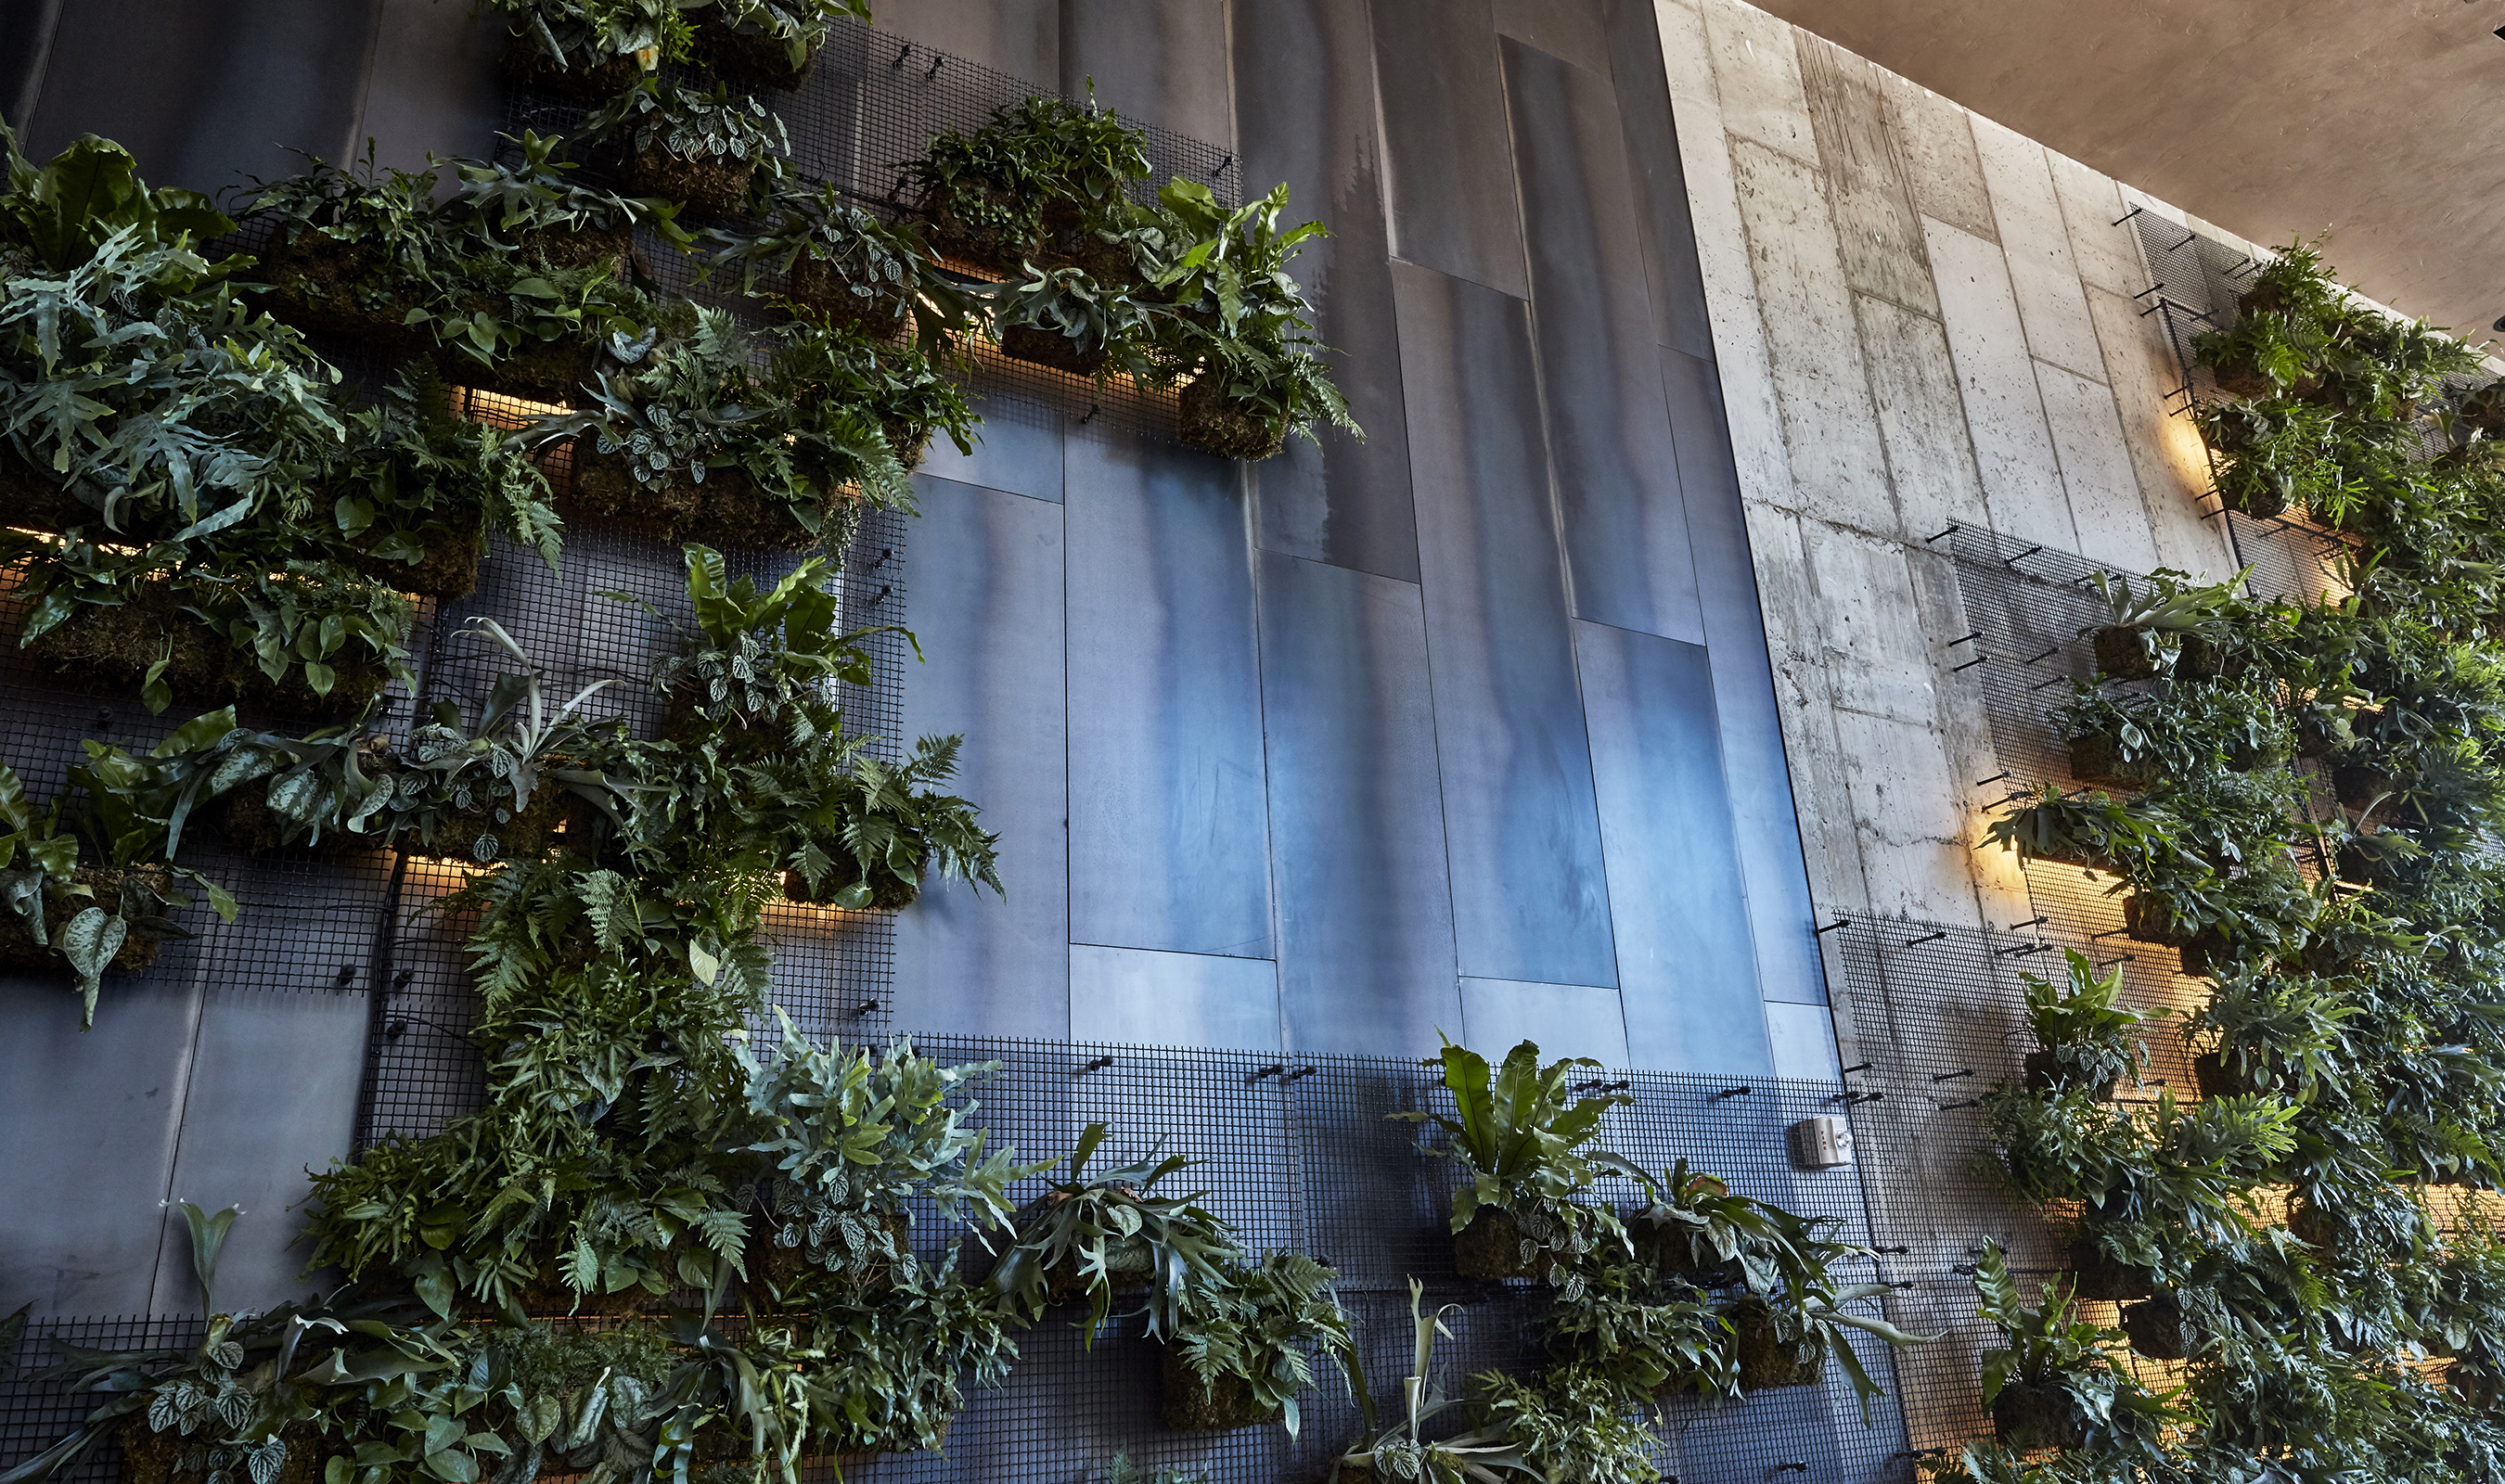 """""""The living wall adds warmth, beauty and nature to the hotel's lobby,"""" said Mark Prescott, president of AgroSci"""